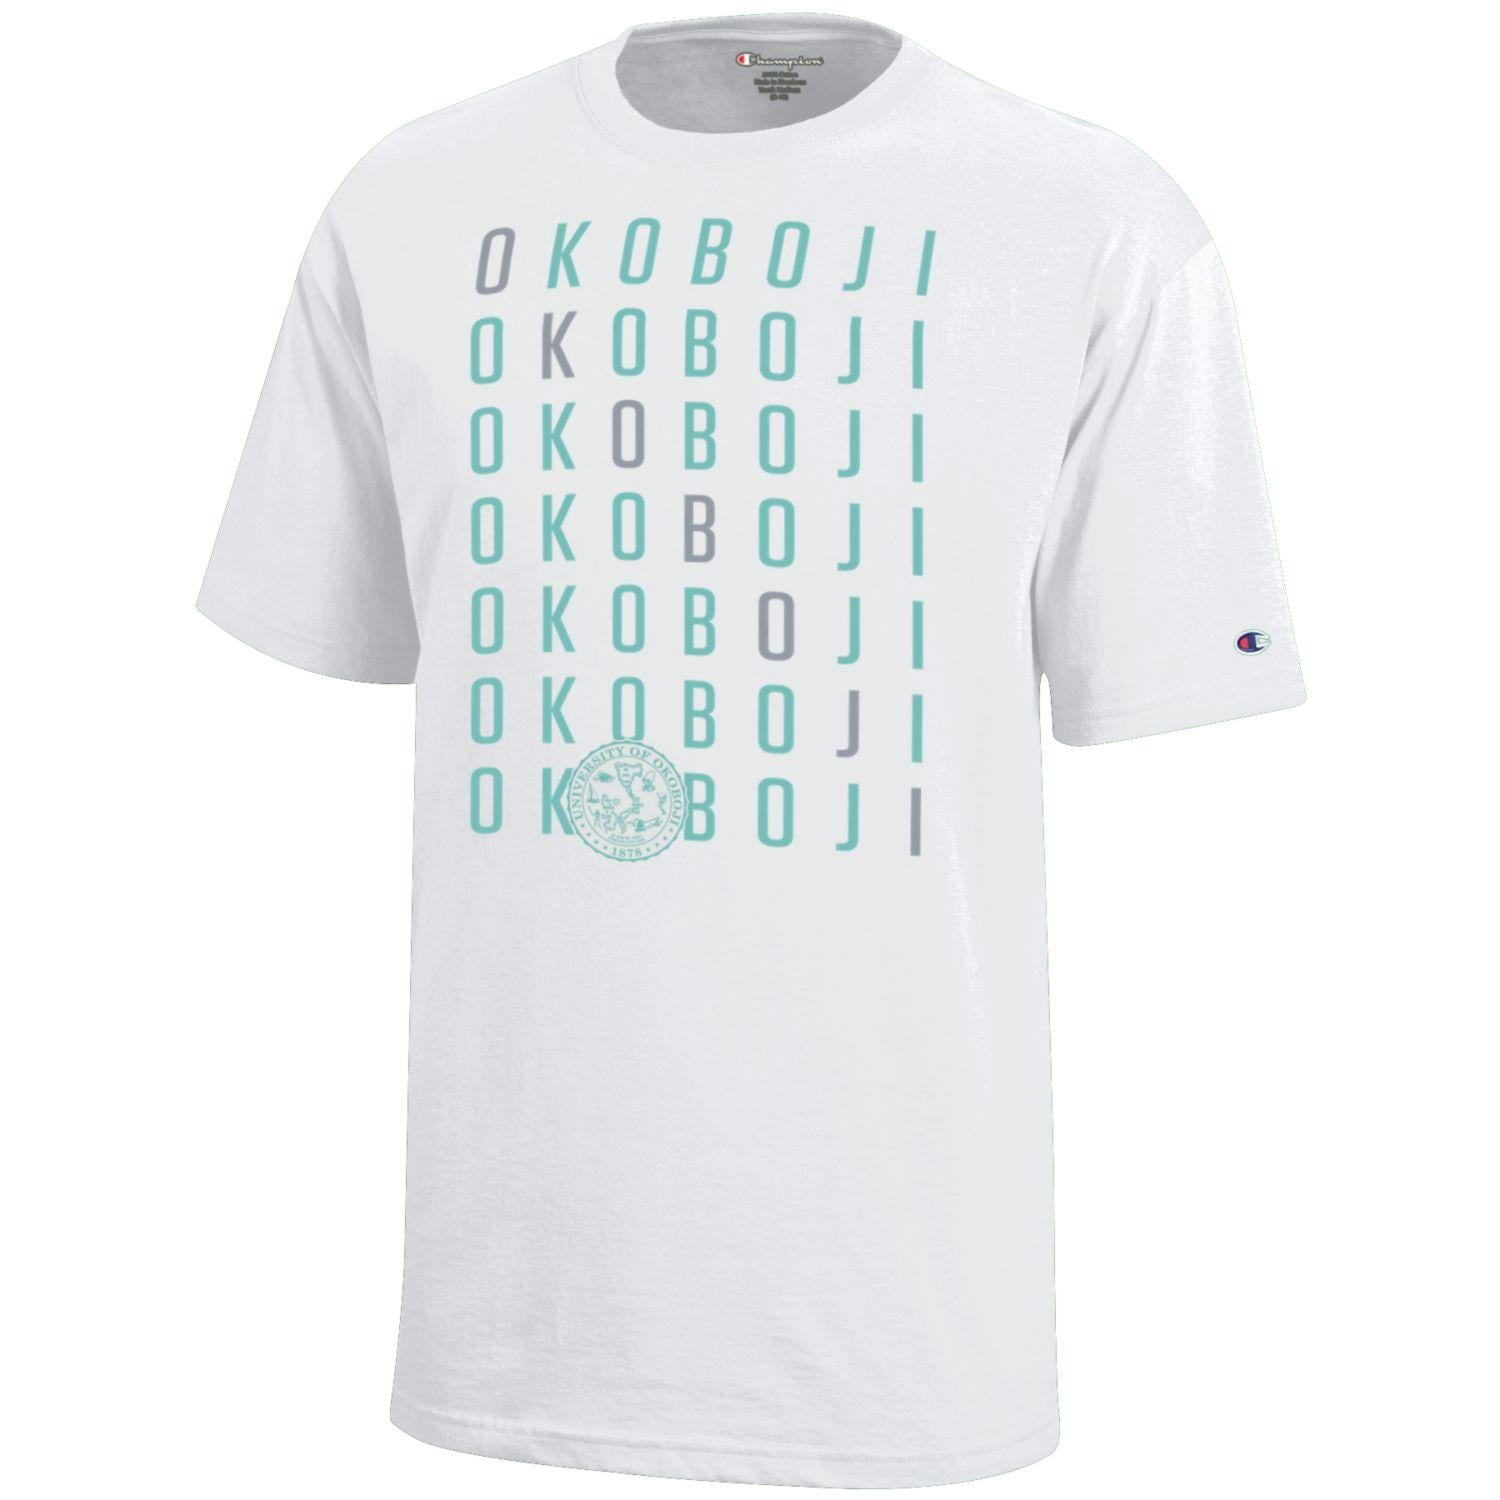 Girls OKOBOJI Crossword Tee - Mint Green